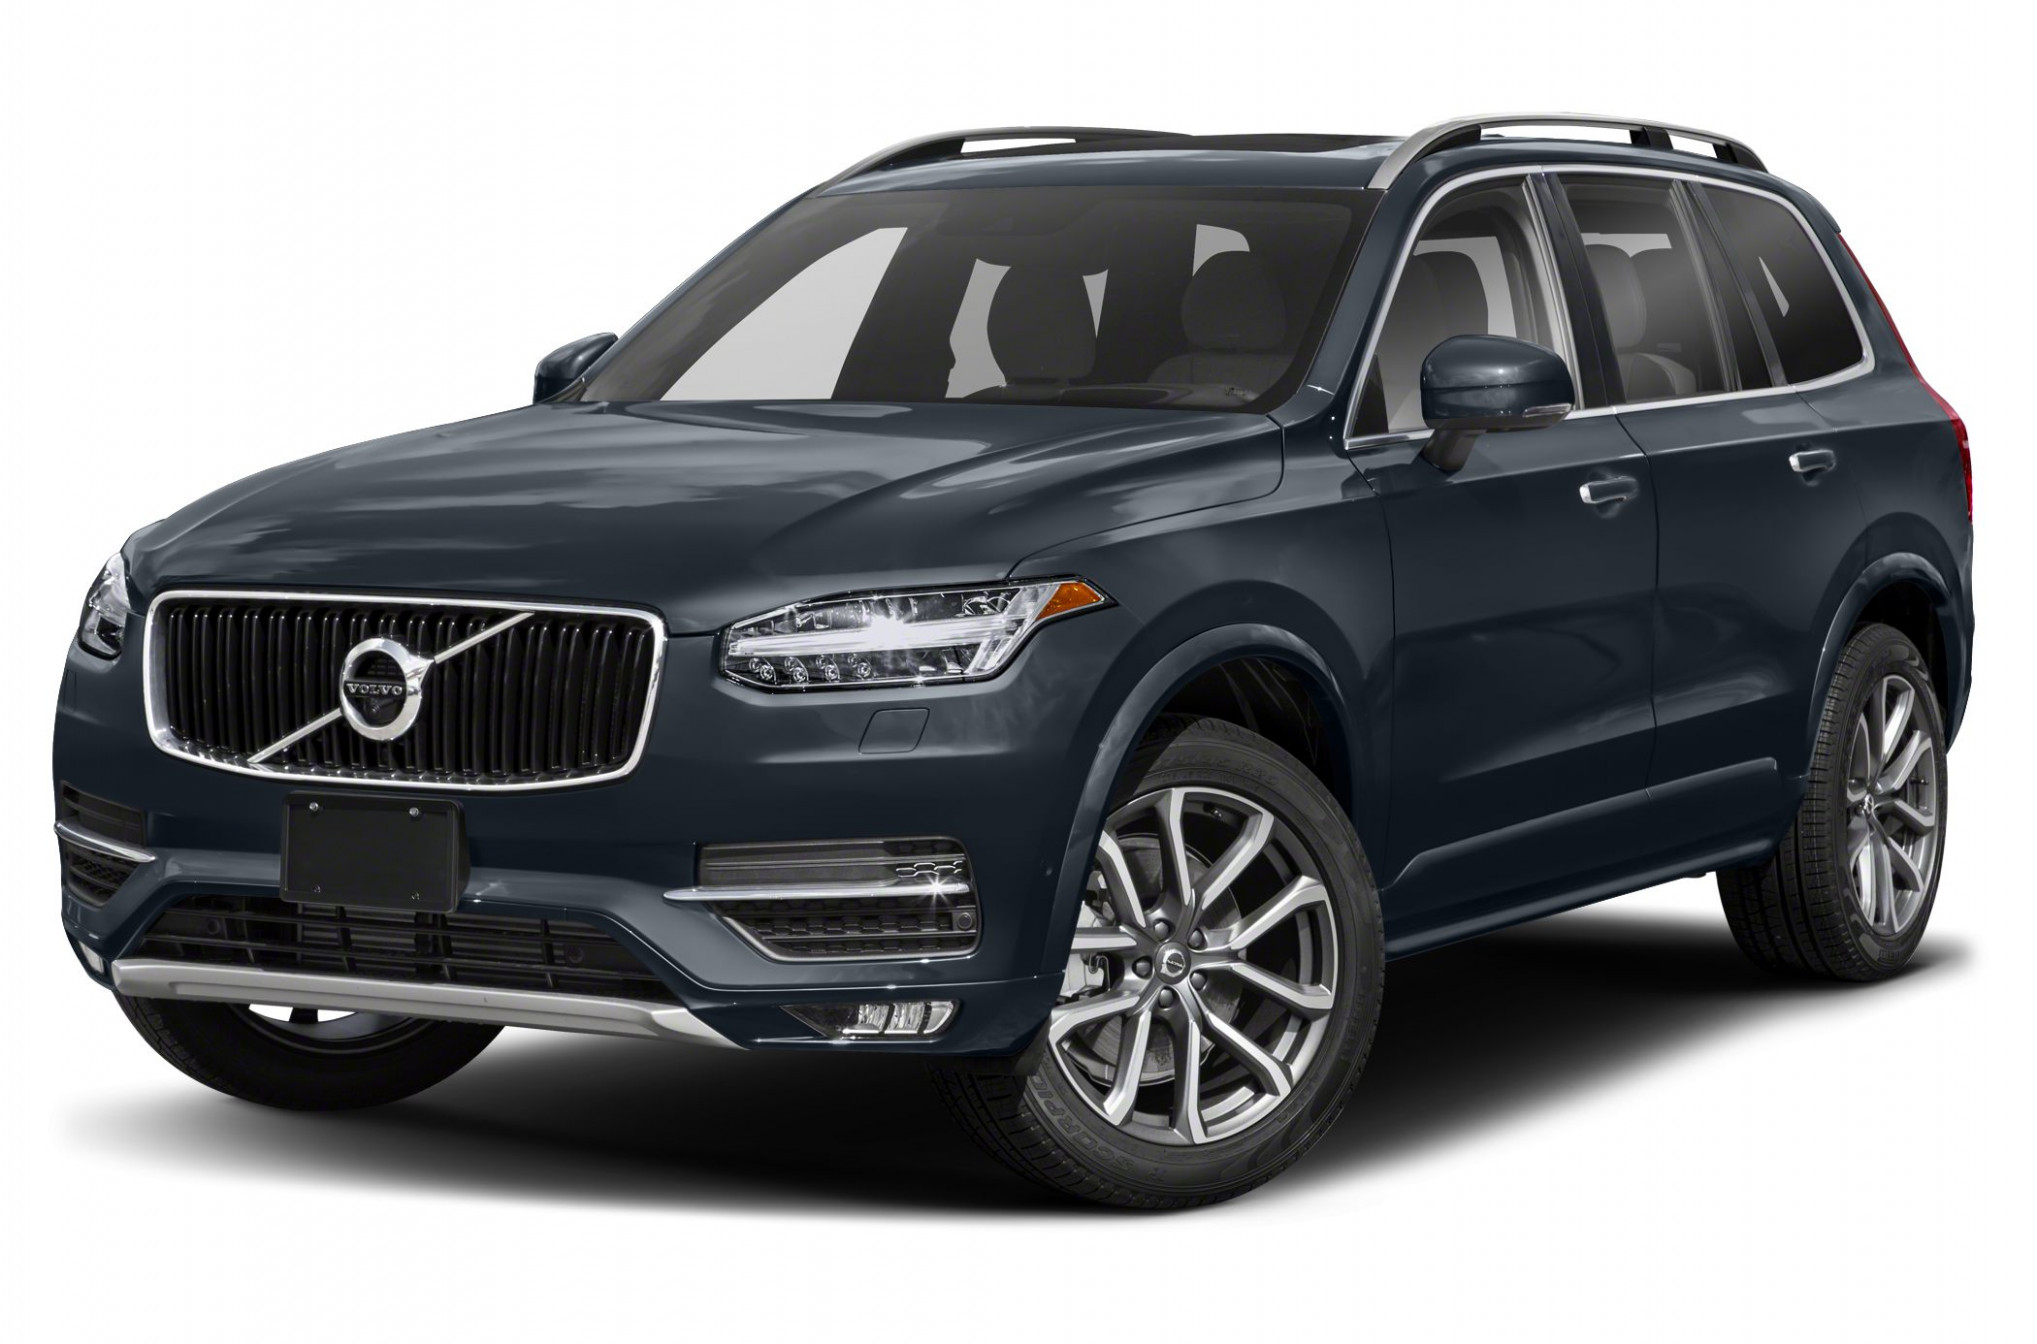 7 Volvo XC7 Reviews, Specs, Photos - 2020 volvo models and prices